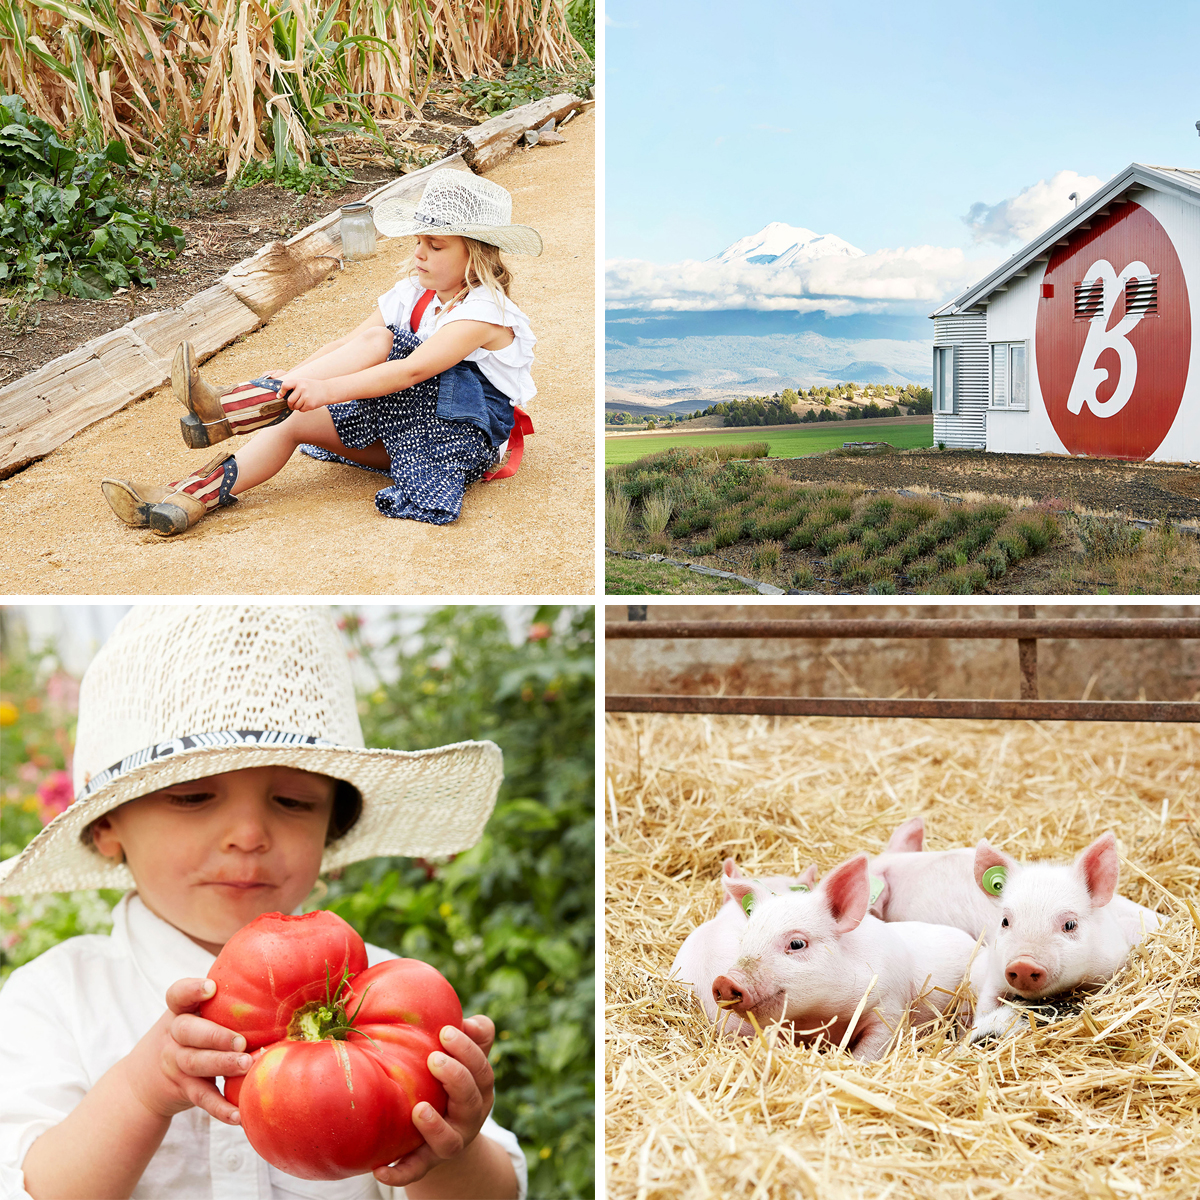 viola putting on boots, theo holding a tomato, farm, piglets